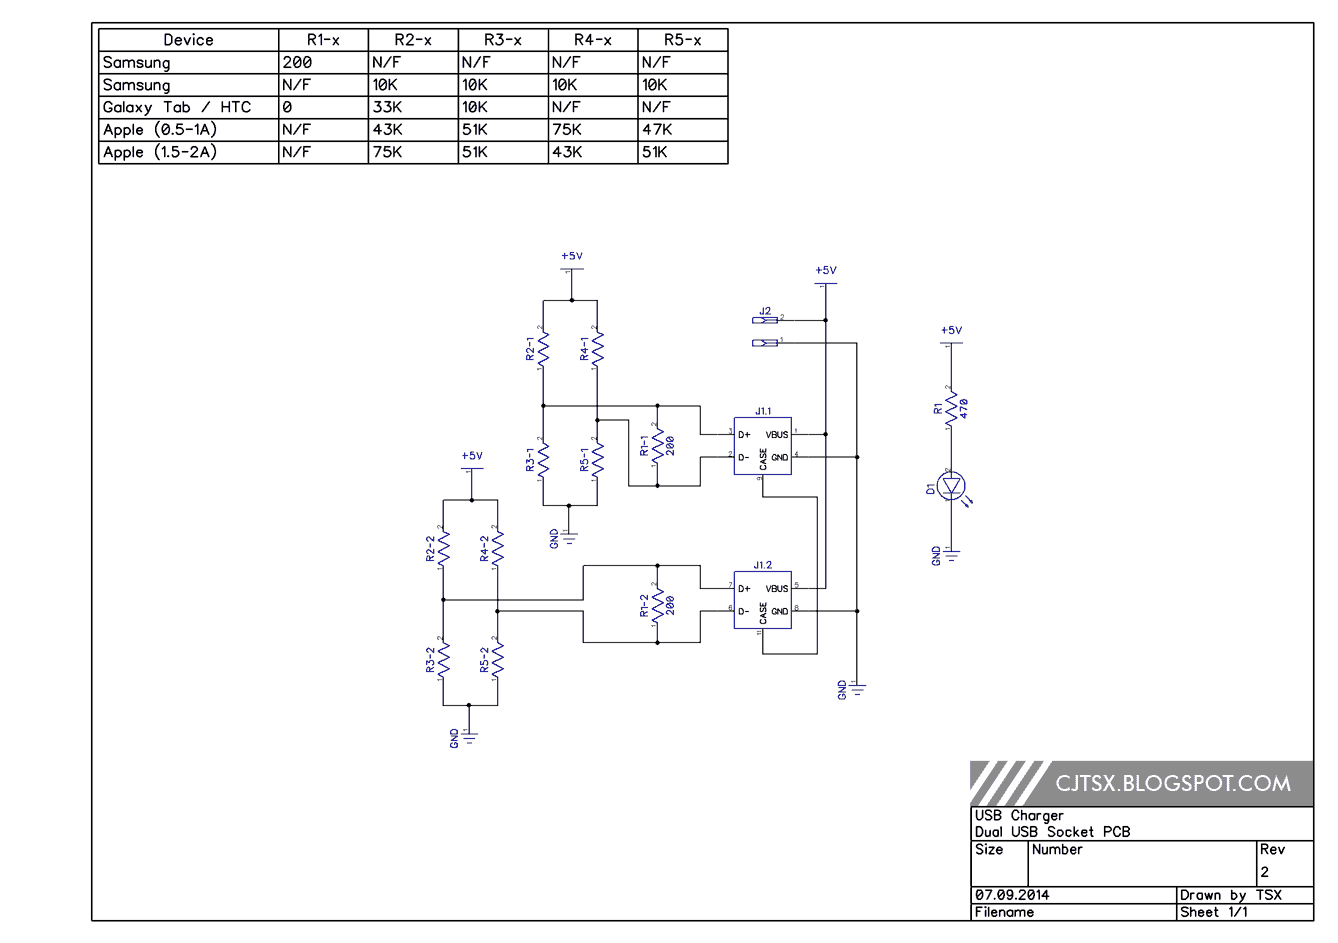 Digital Twilight: 3A USB device charger (LM2576) (Updated)